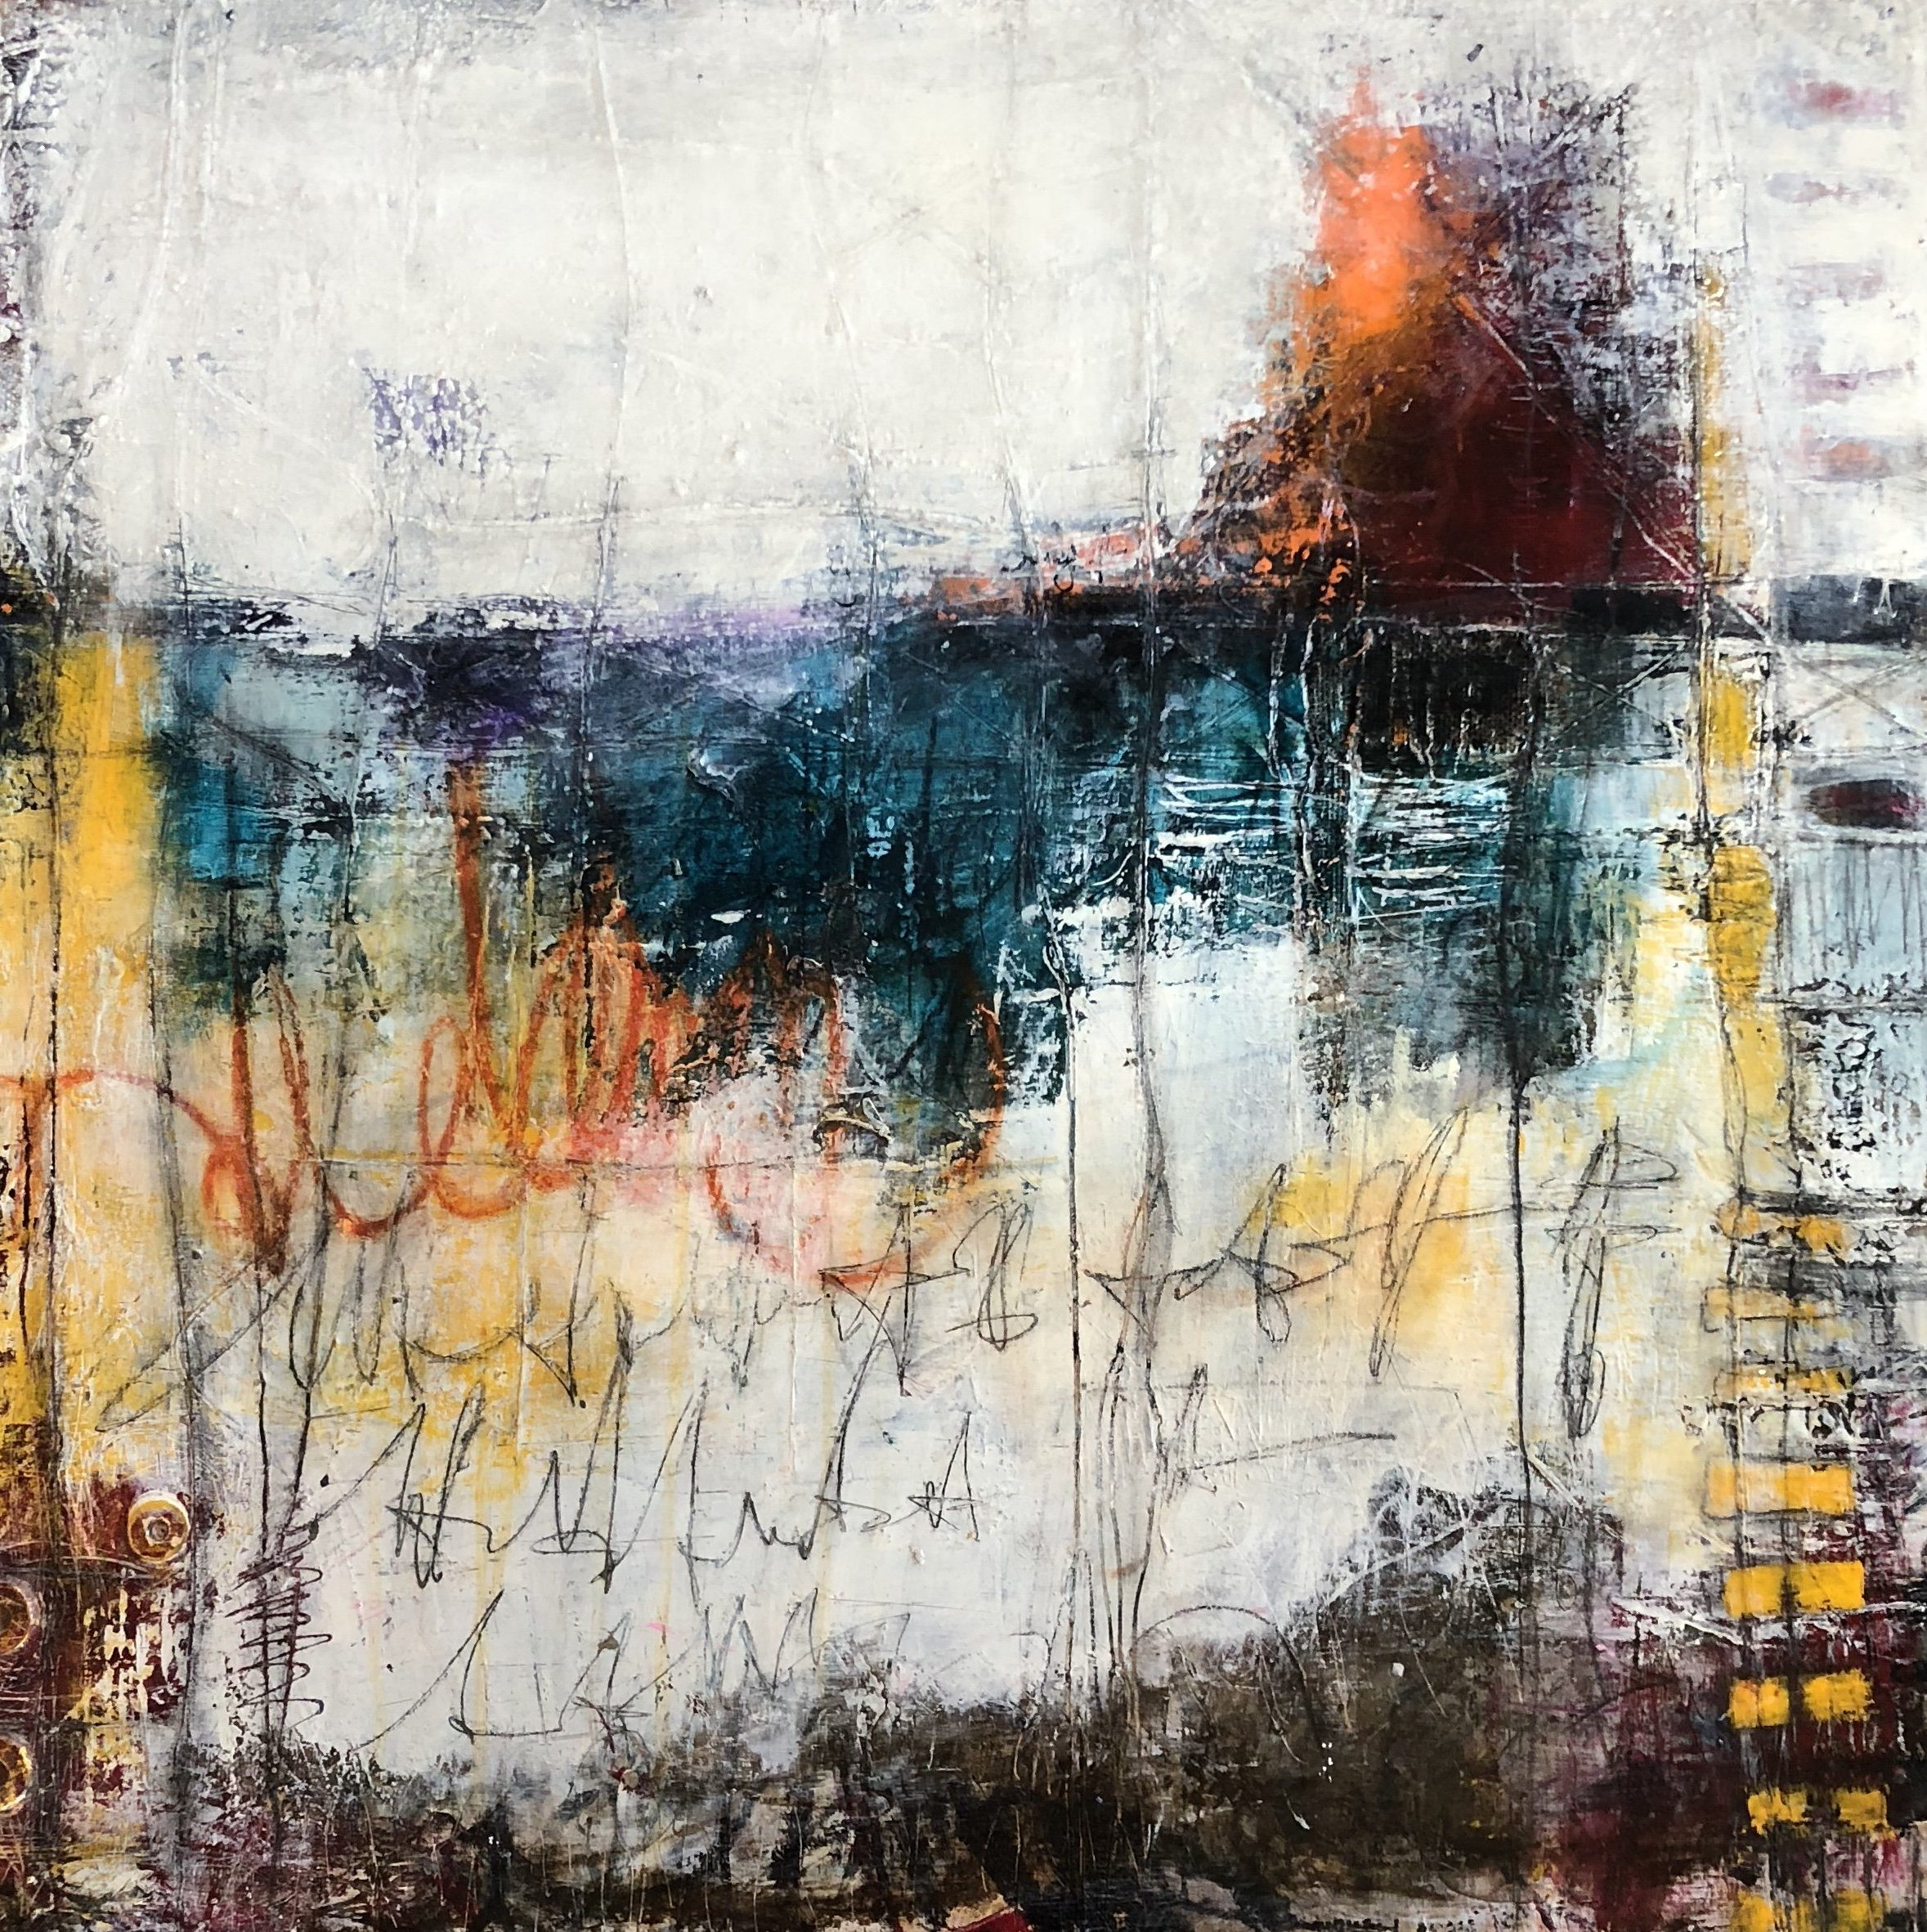 Mixed media painting series titled New To The City #2 by abstract artist and painter Ann Golumbuk